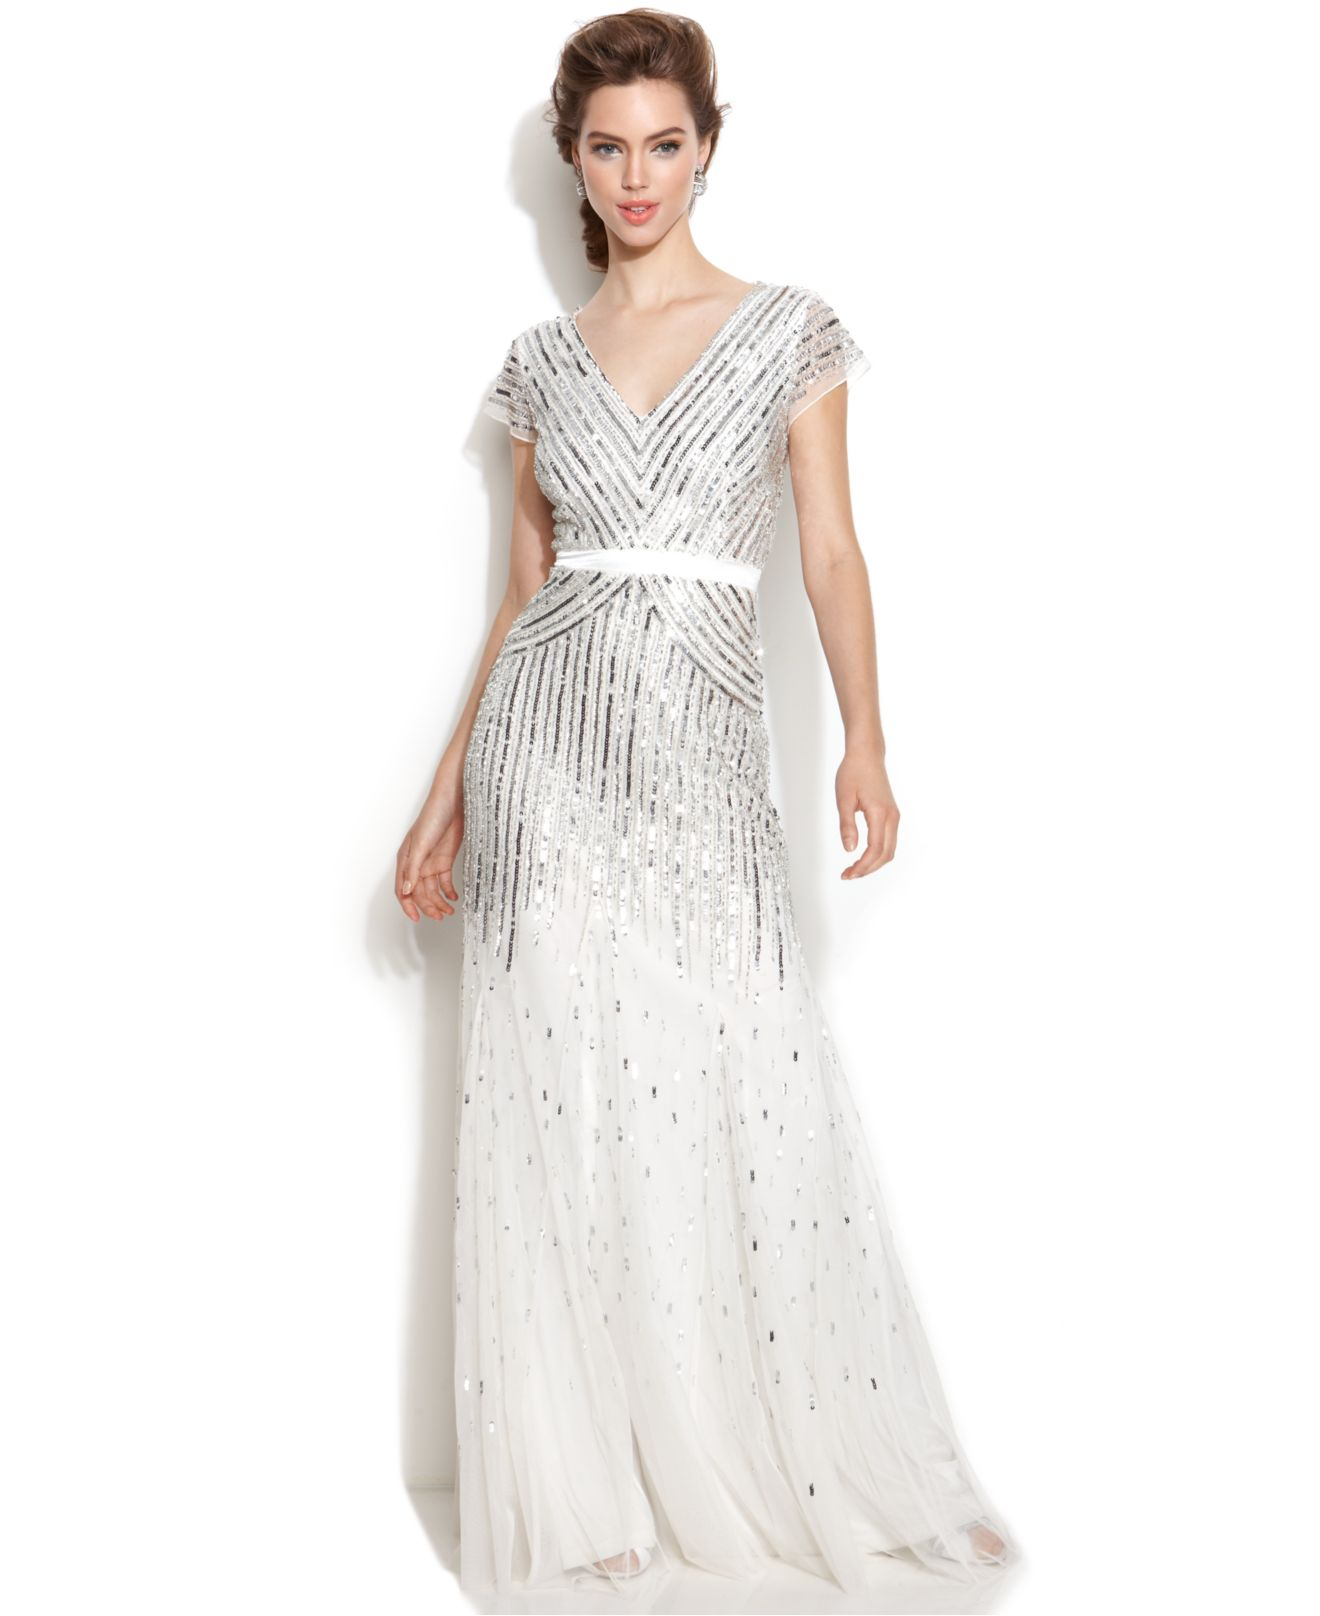 Lyst - Adrianna Papell Cap-Sleeve Sequined Gown in White